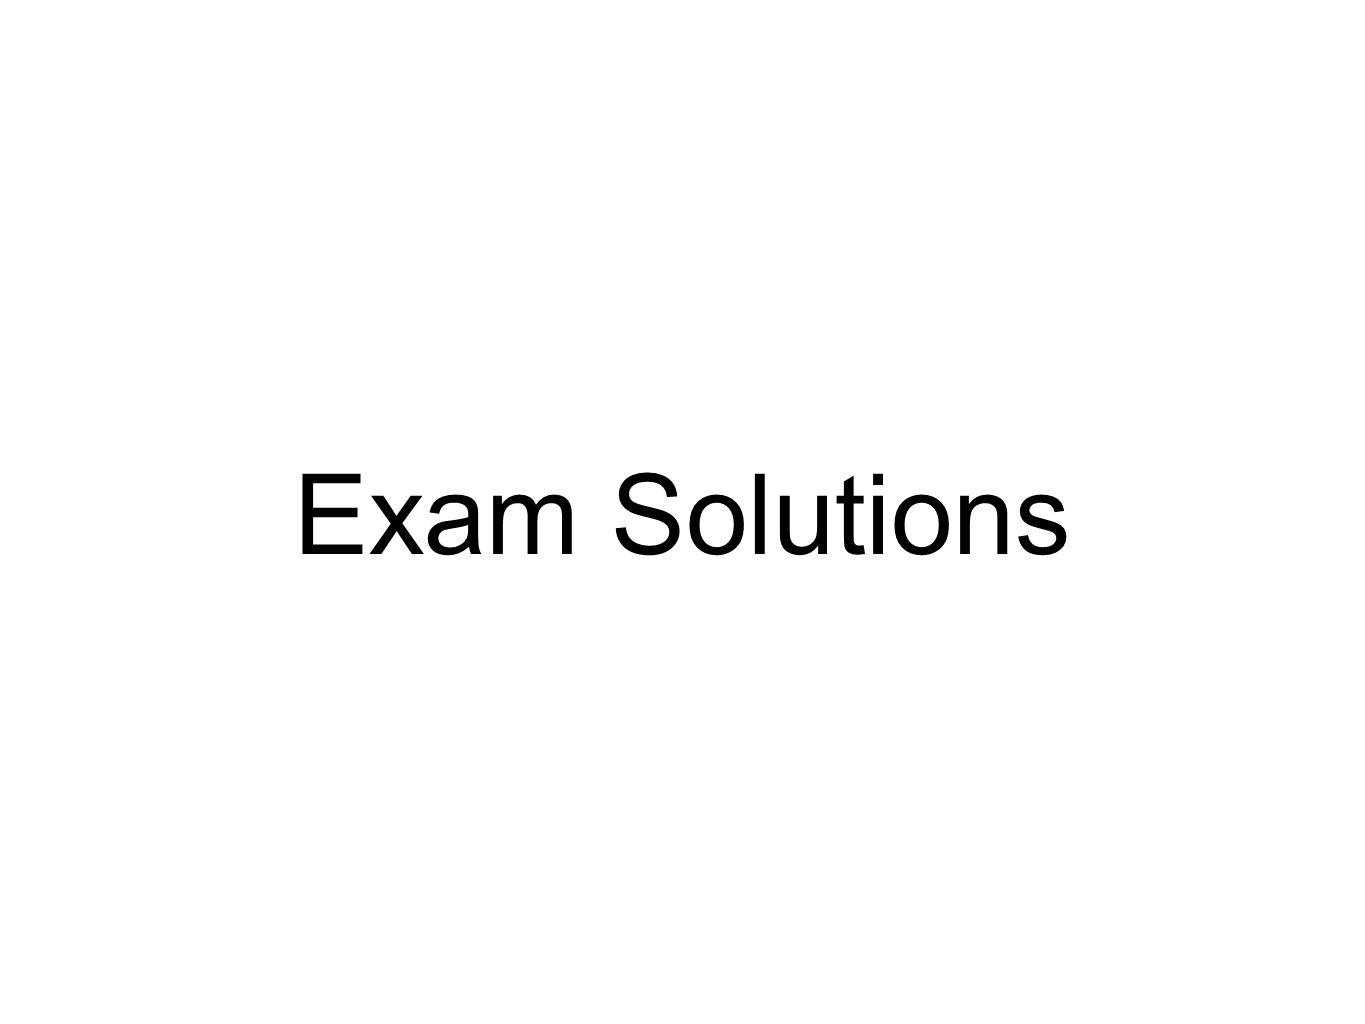 Exam Solutions